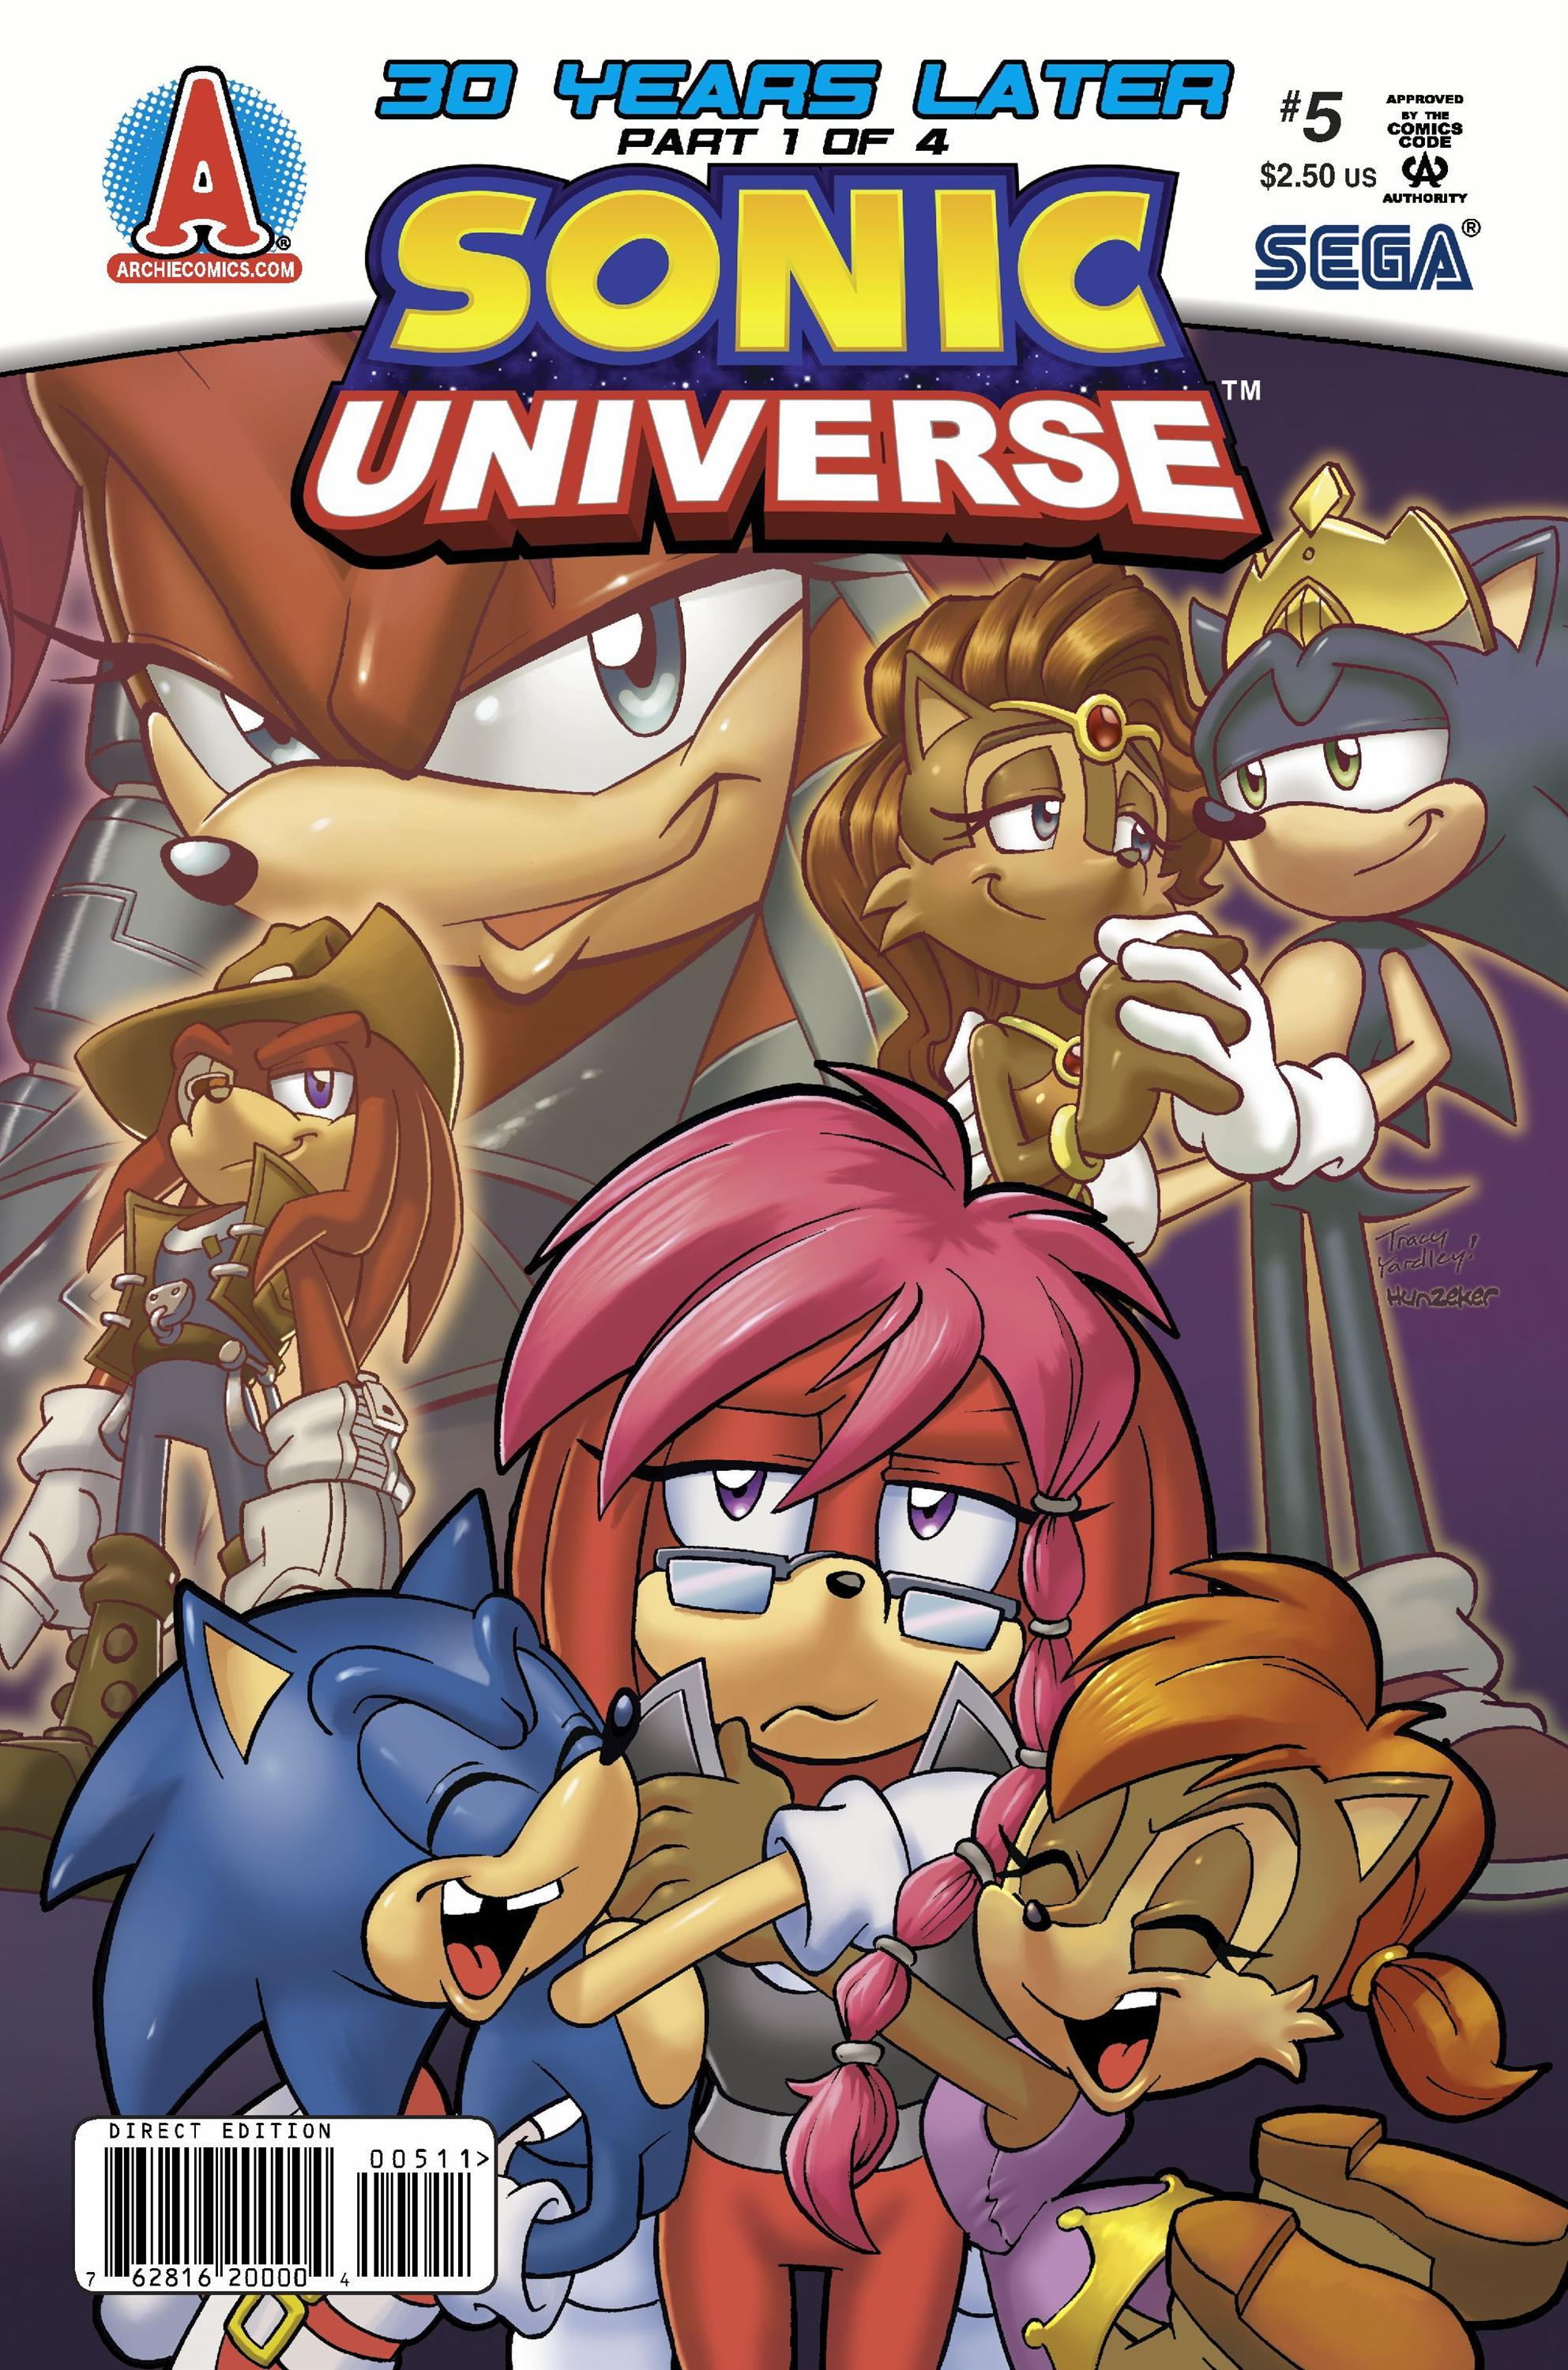 Archie sonic universe issue 5 mobius encyclopaedia fandom archie sonic universe issue 5 altavistaventures Images